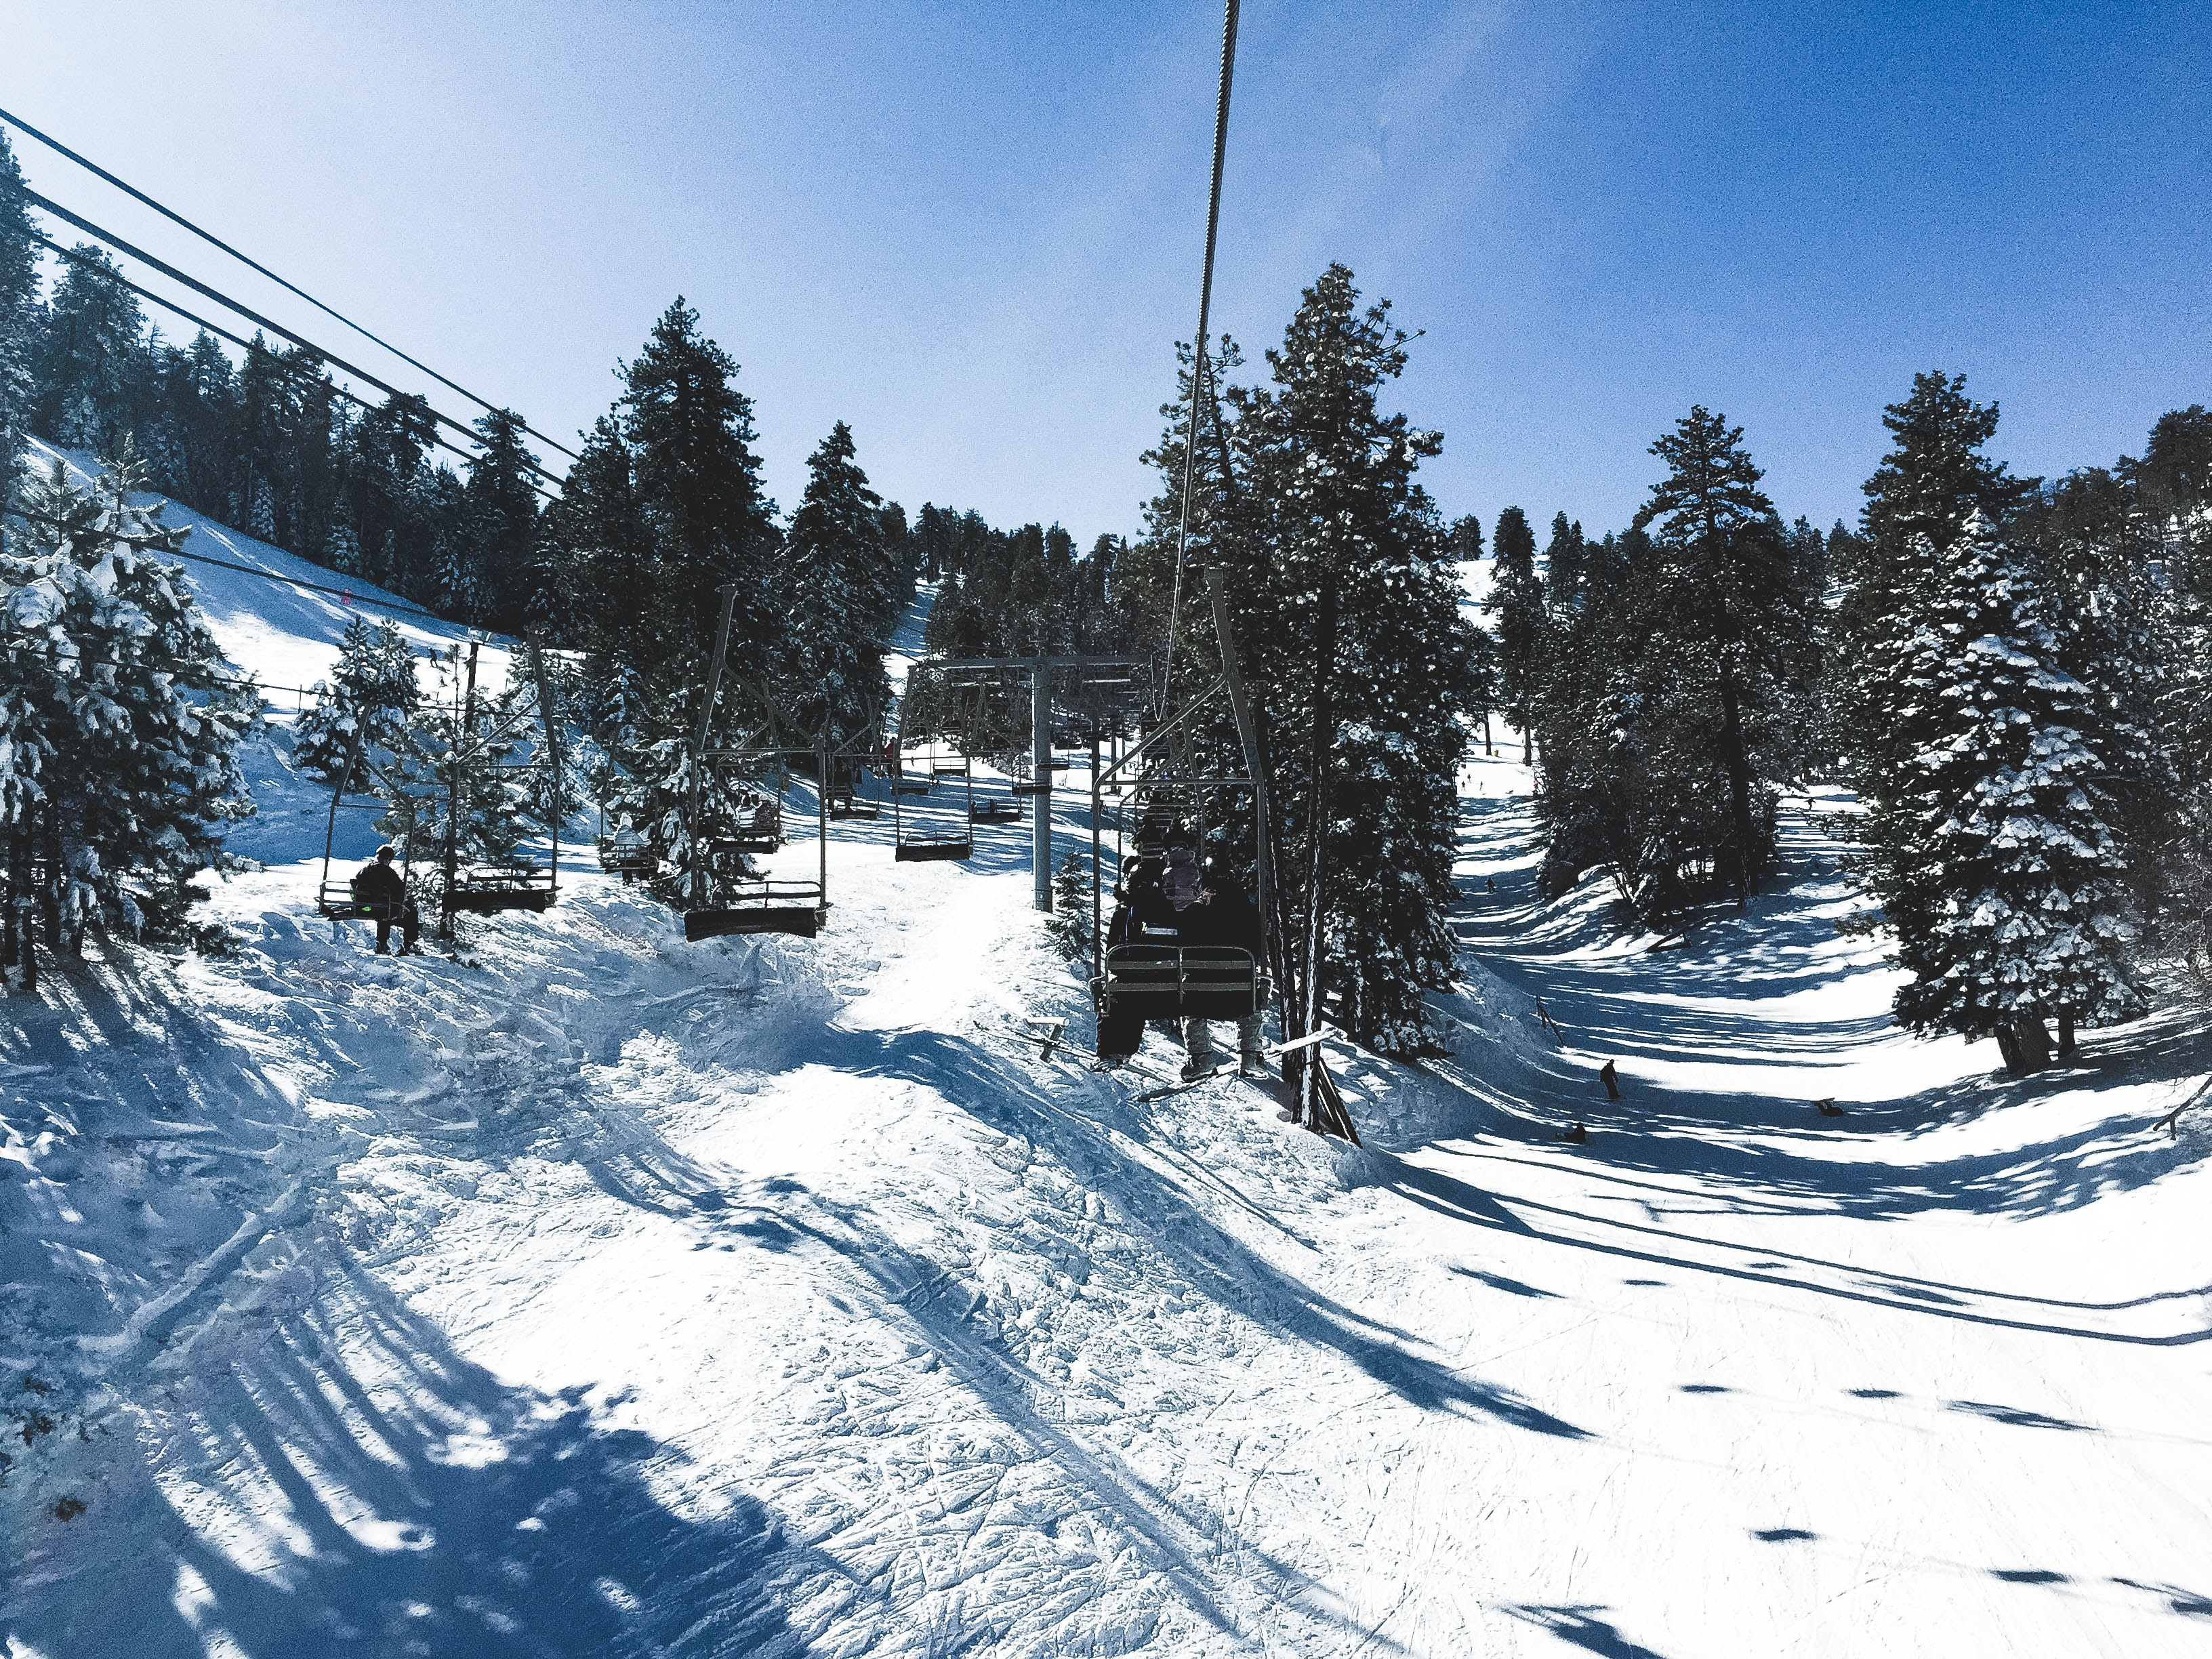 Cable Car, Outdoors, Weather, Trees, Snowy, HQ Photo